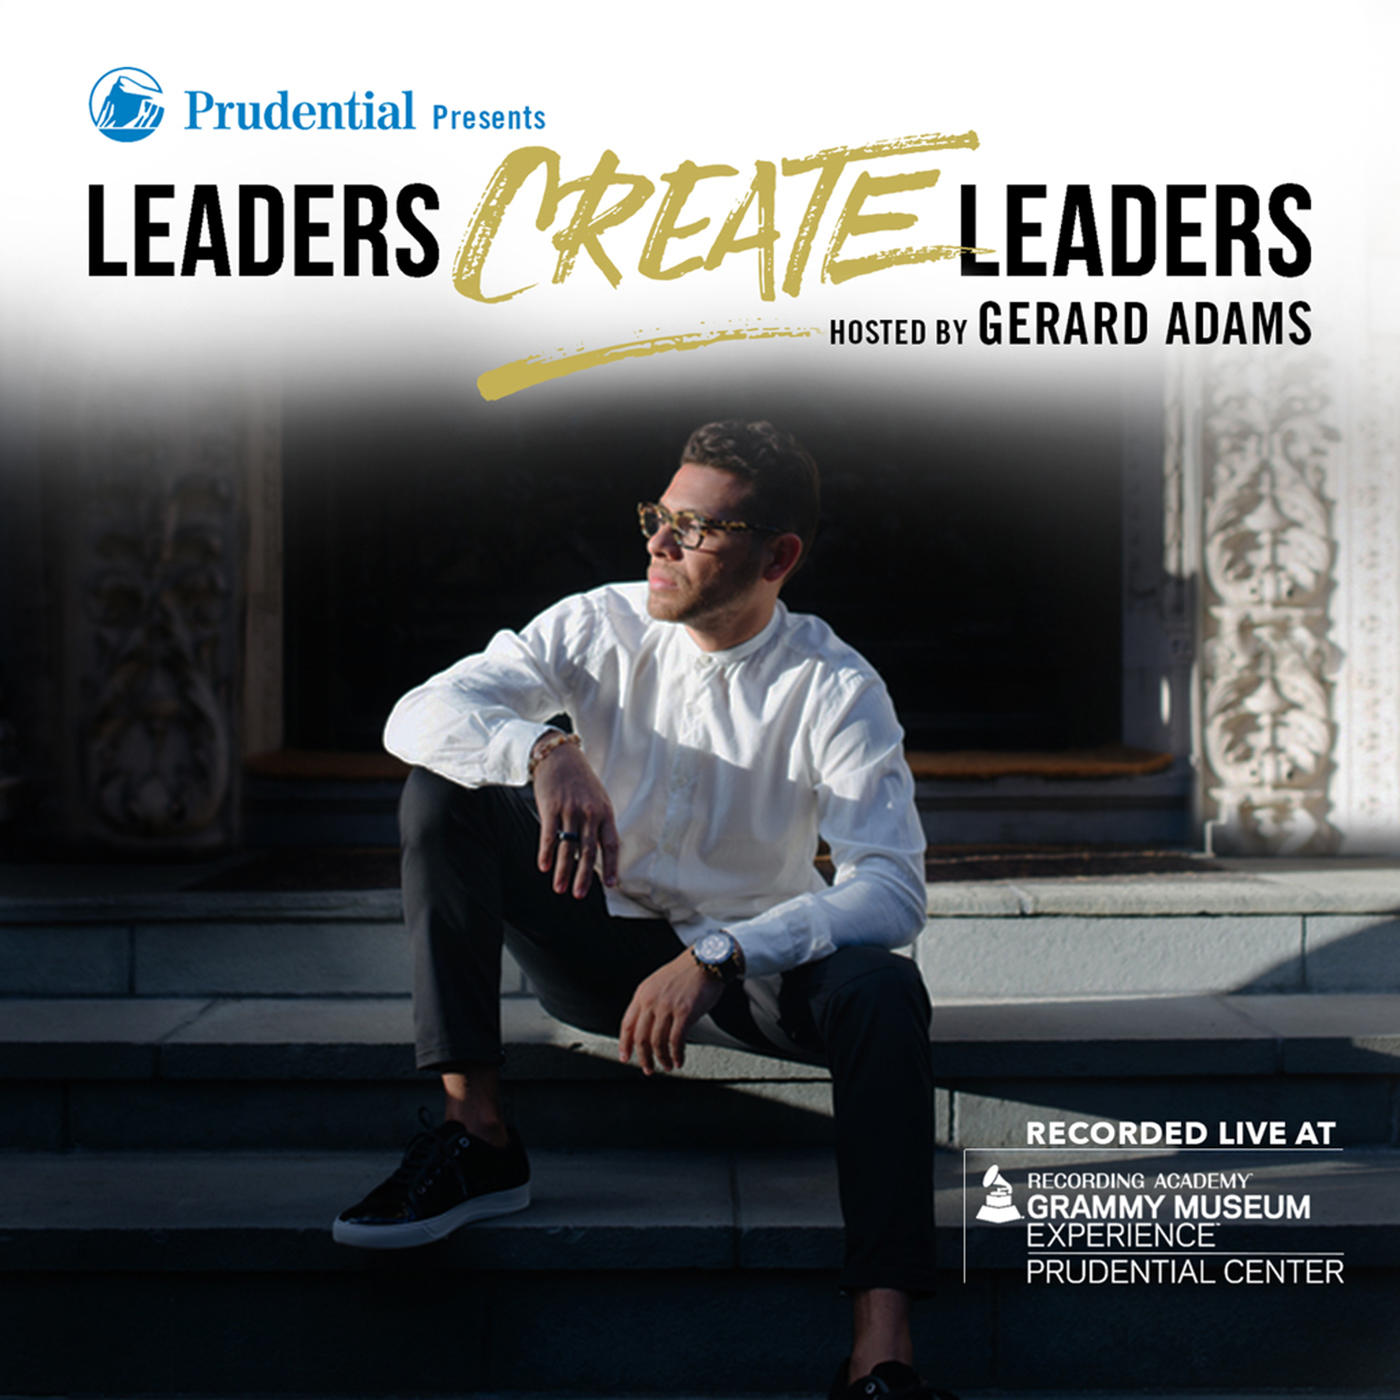 Prudential Presents Leaders Create Leaders Hosted by Gerard Adams